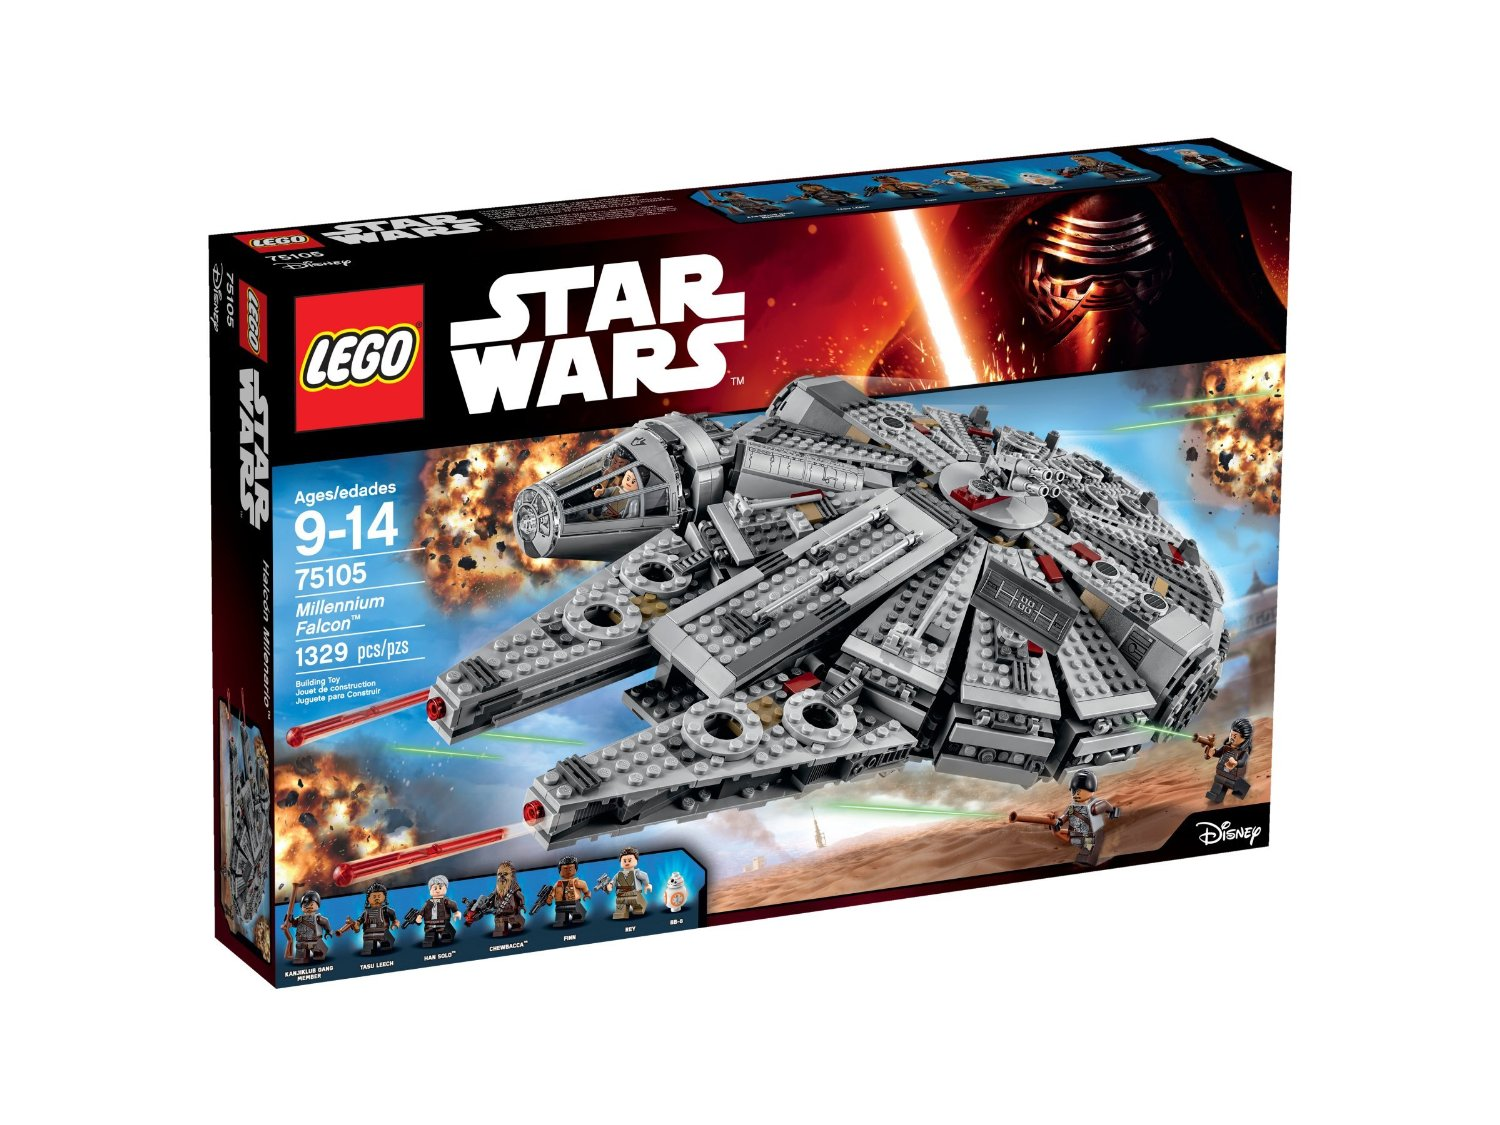 LEGO Star Wars Gift Idea